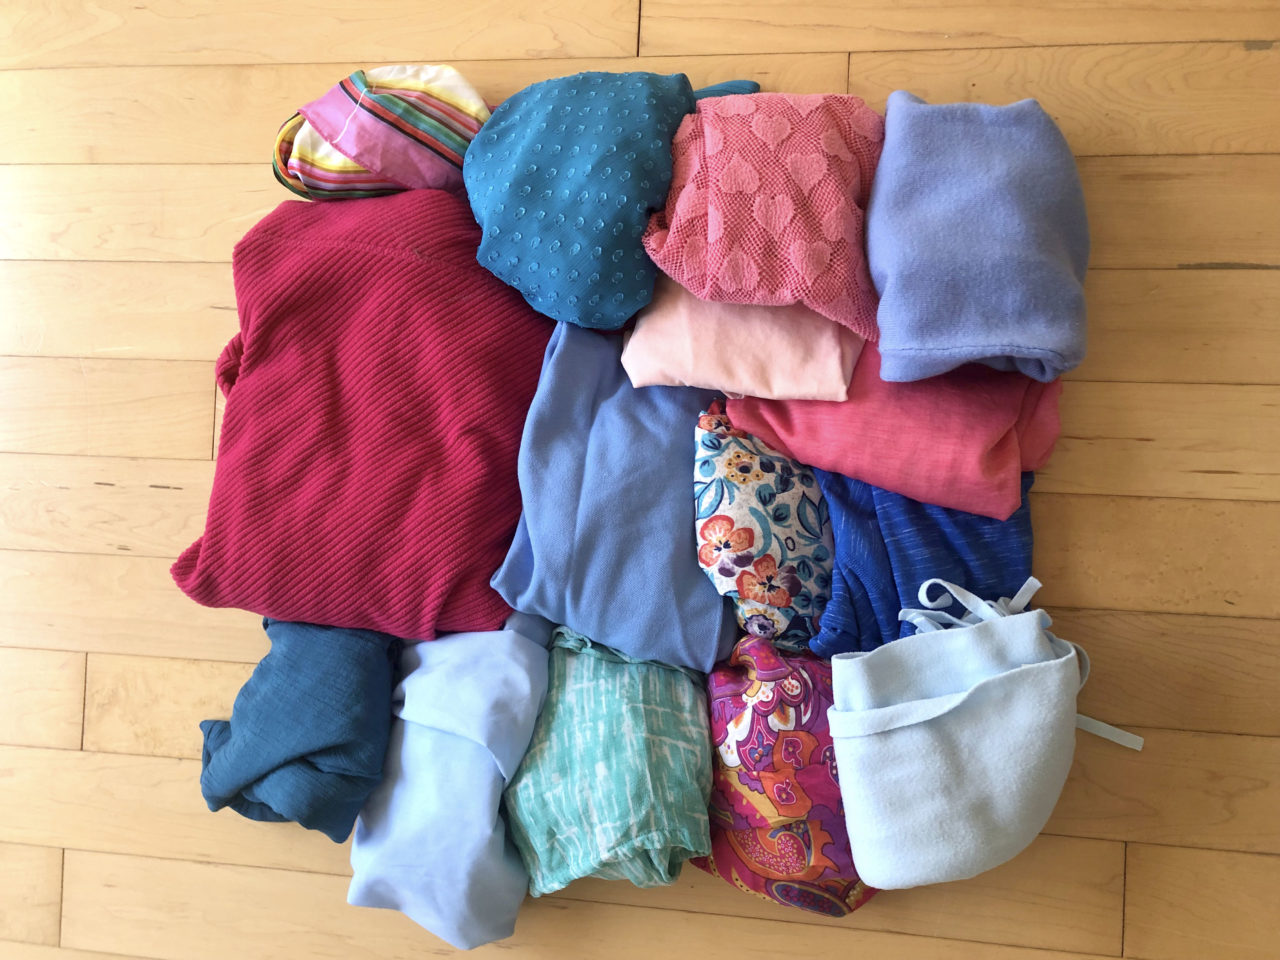 Fabric and old clothing for berber rag rug making